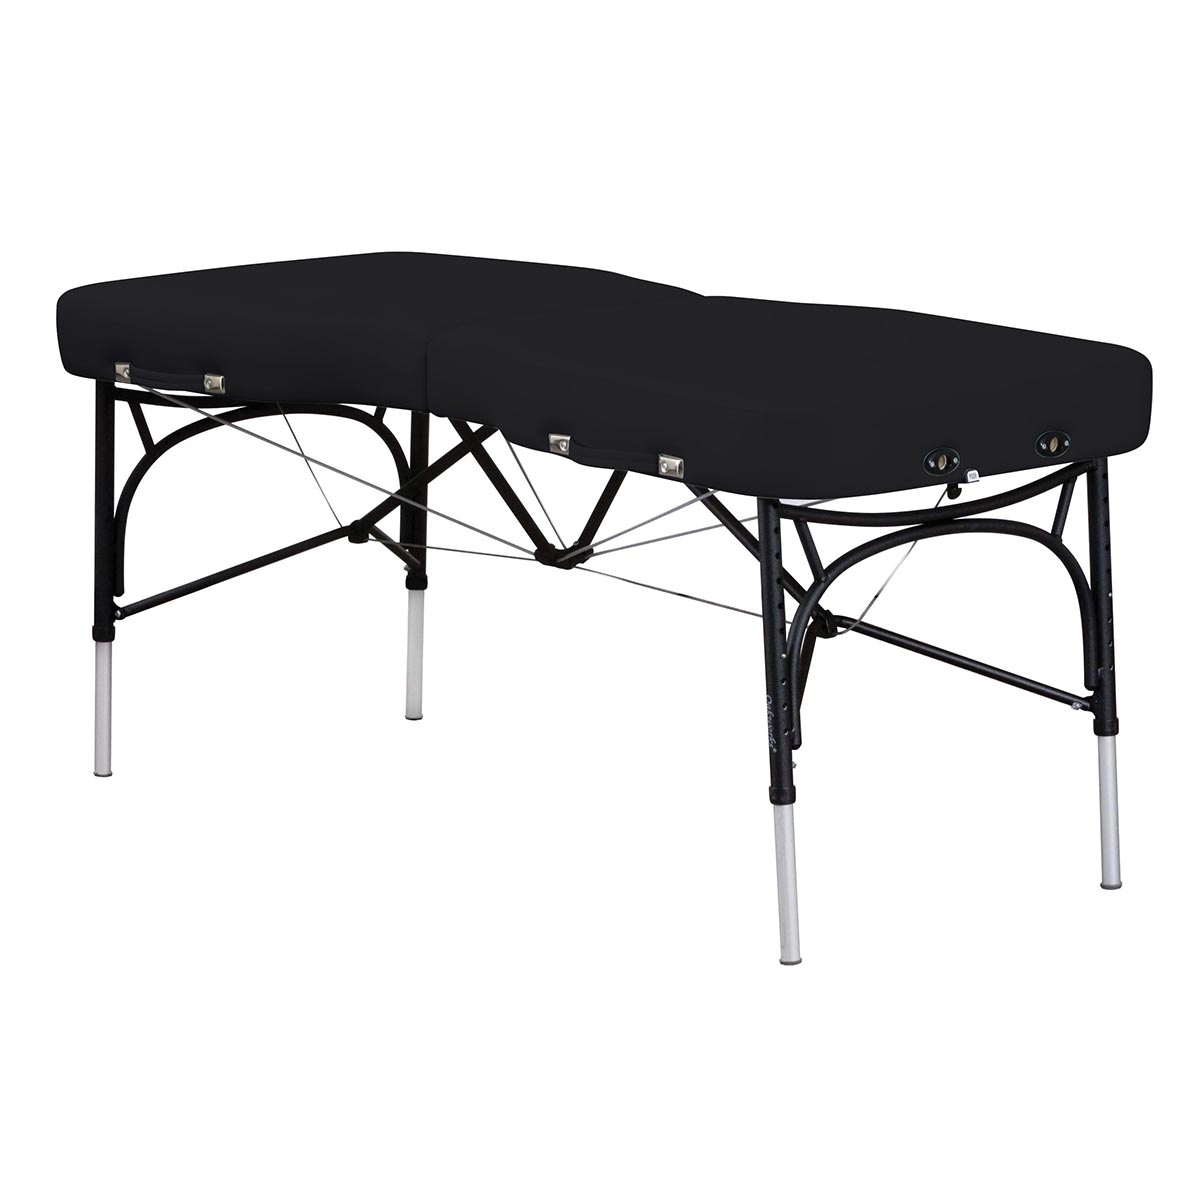 oakworks advanta table package coal